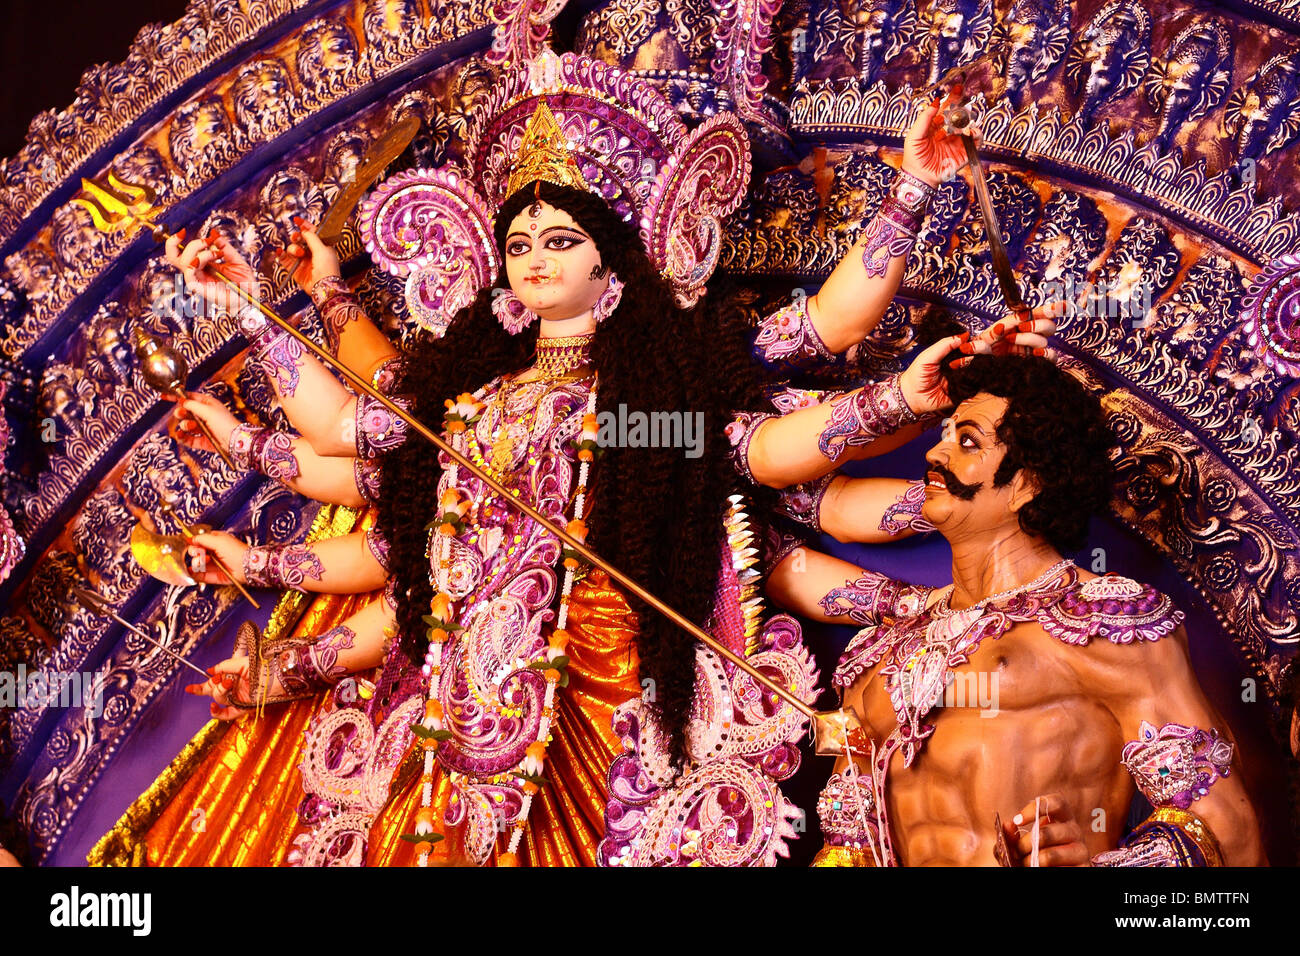 Mahisasura Mardini - Featuring Mahisasura and The Goddess Durga - Stock Image